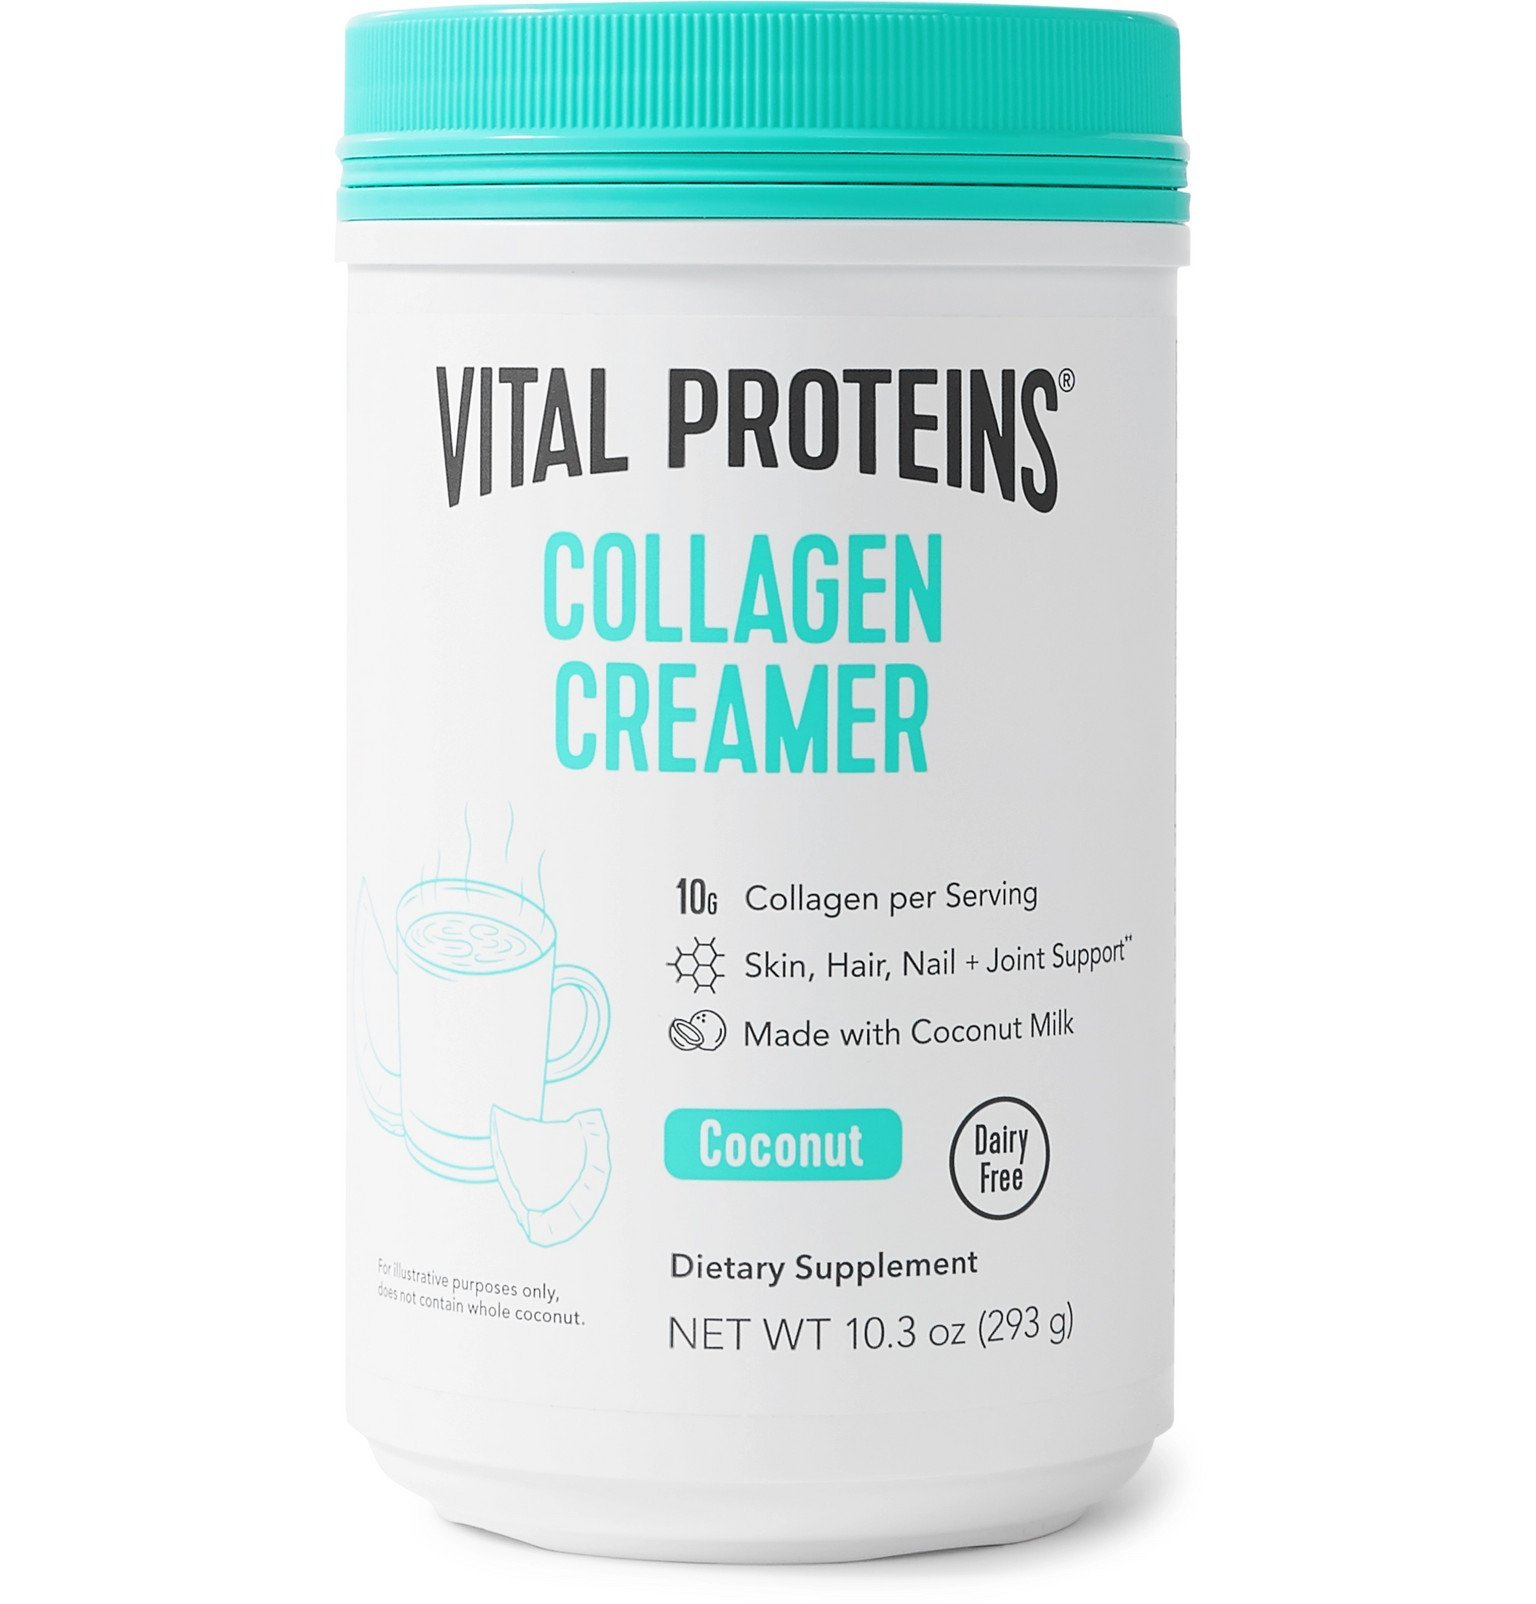 Photo: VITAL PROTEINS - Coconut Collagen Creamer, 293g - Colorless